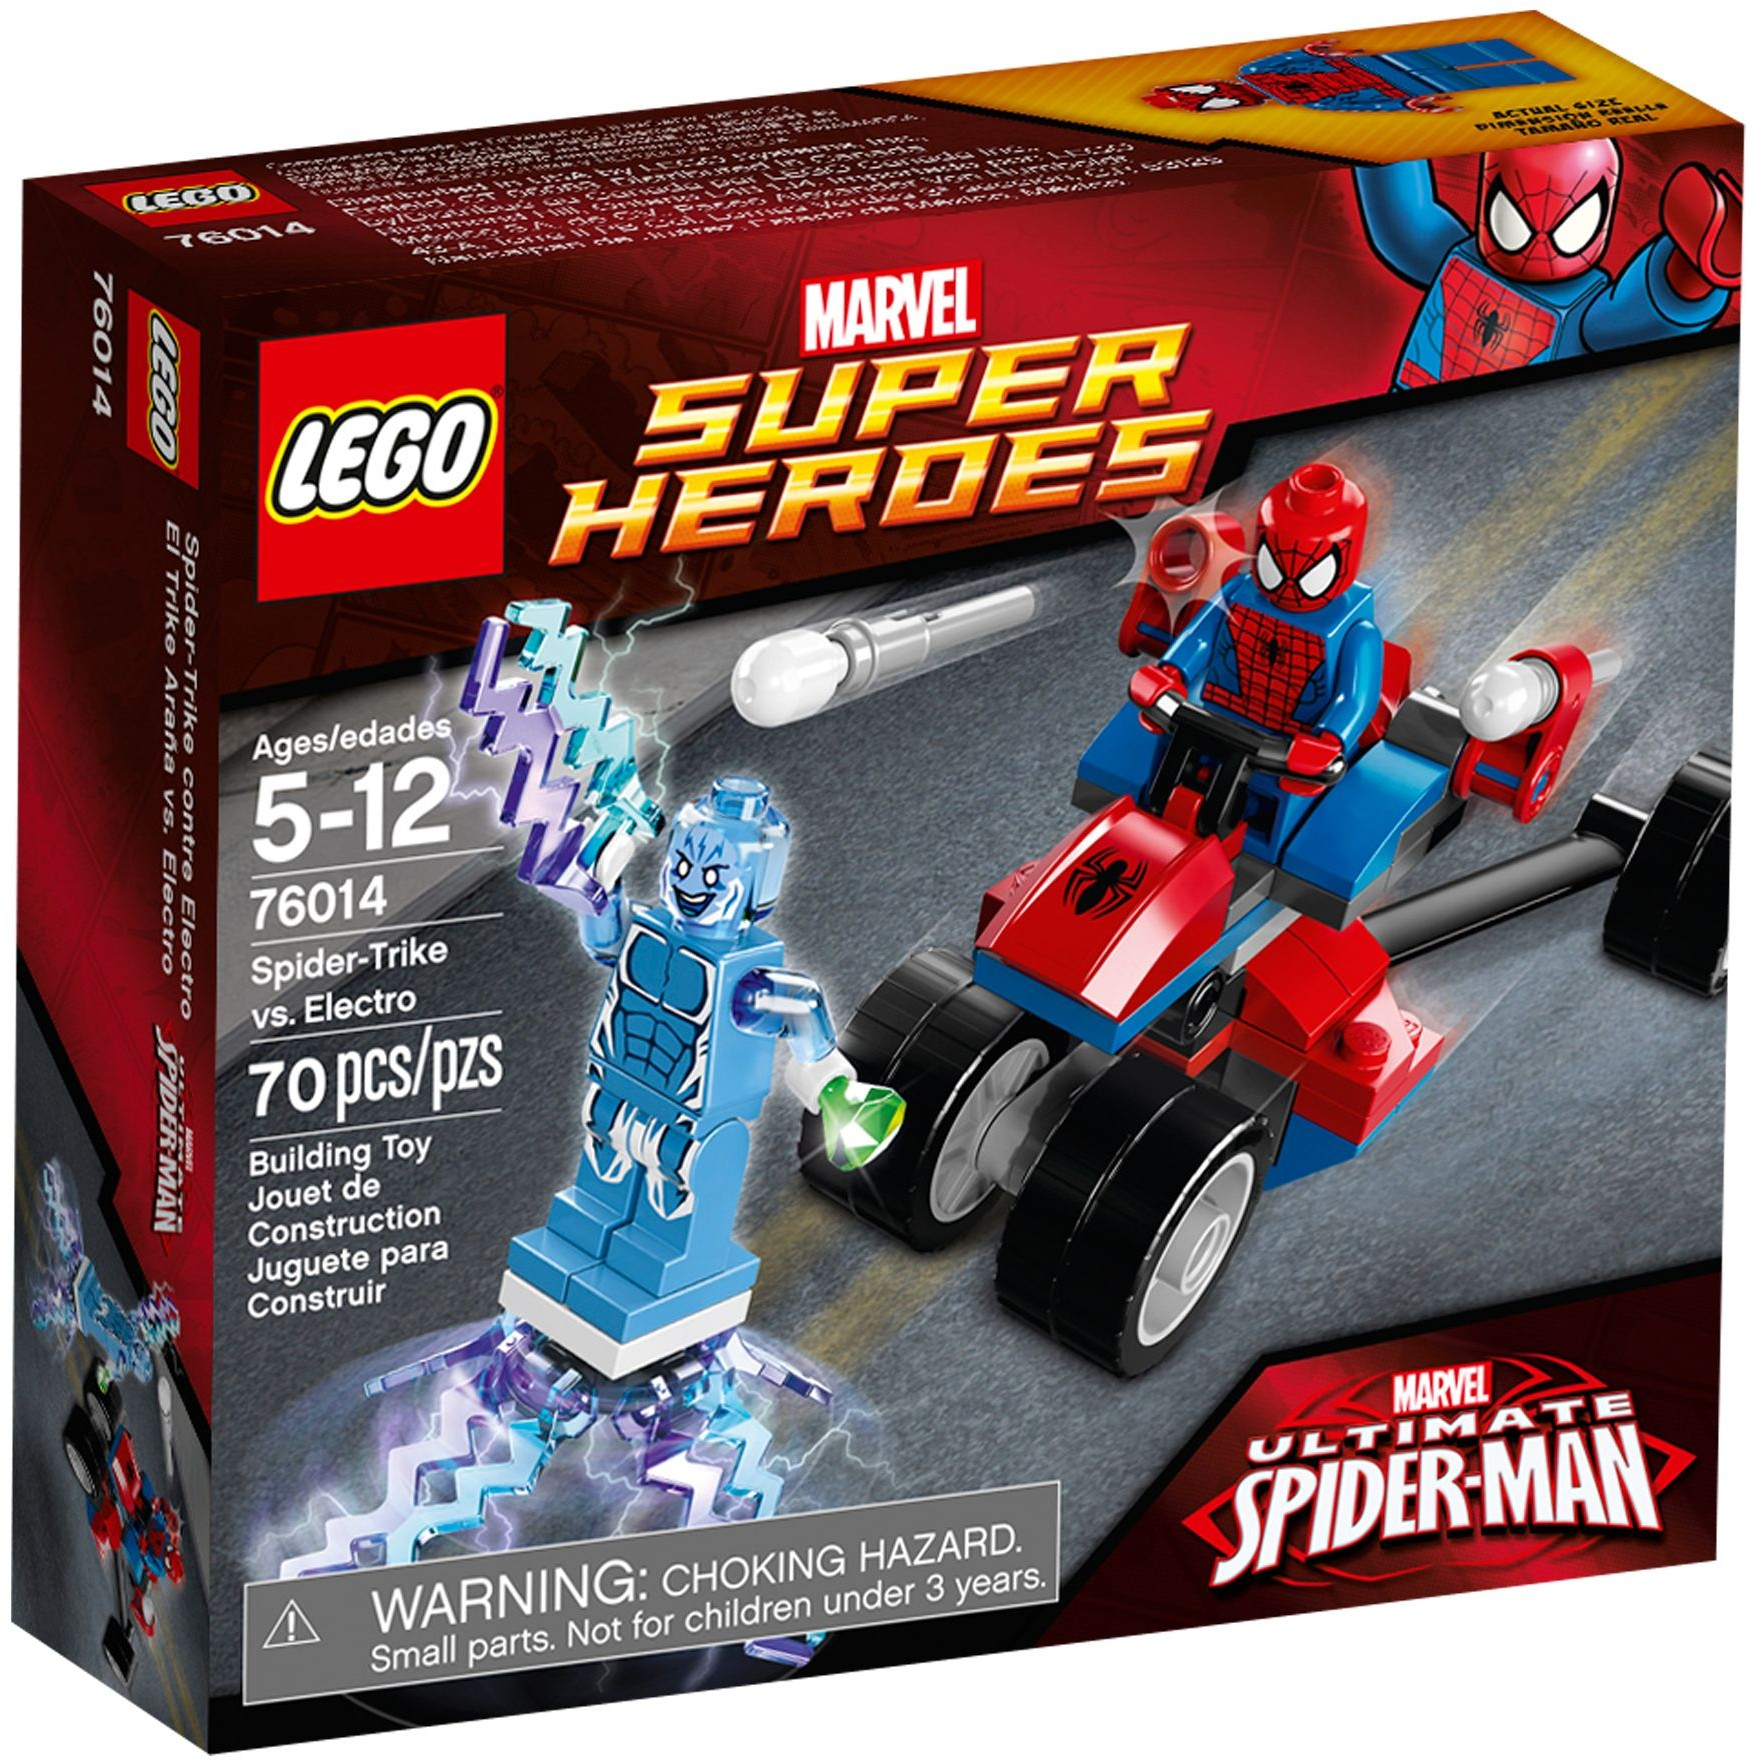 LEGO 76014 - Super Heroes - Spider-Trike vs. Electro